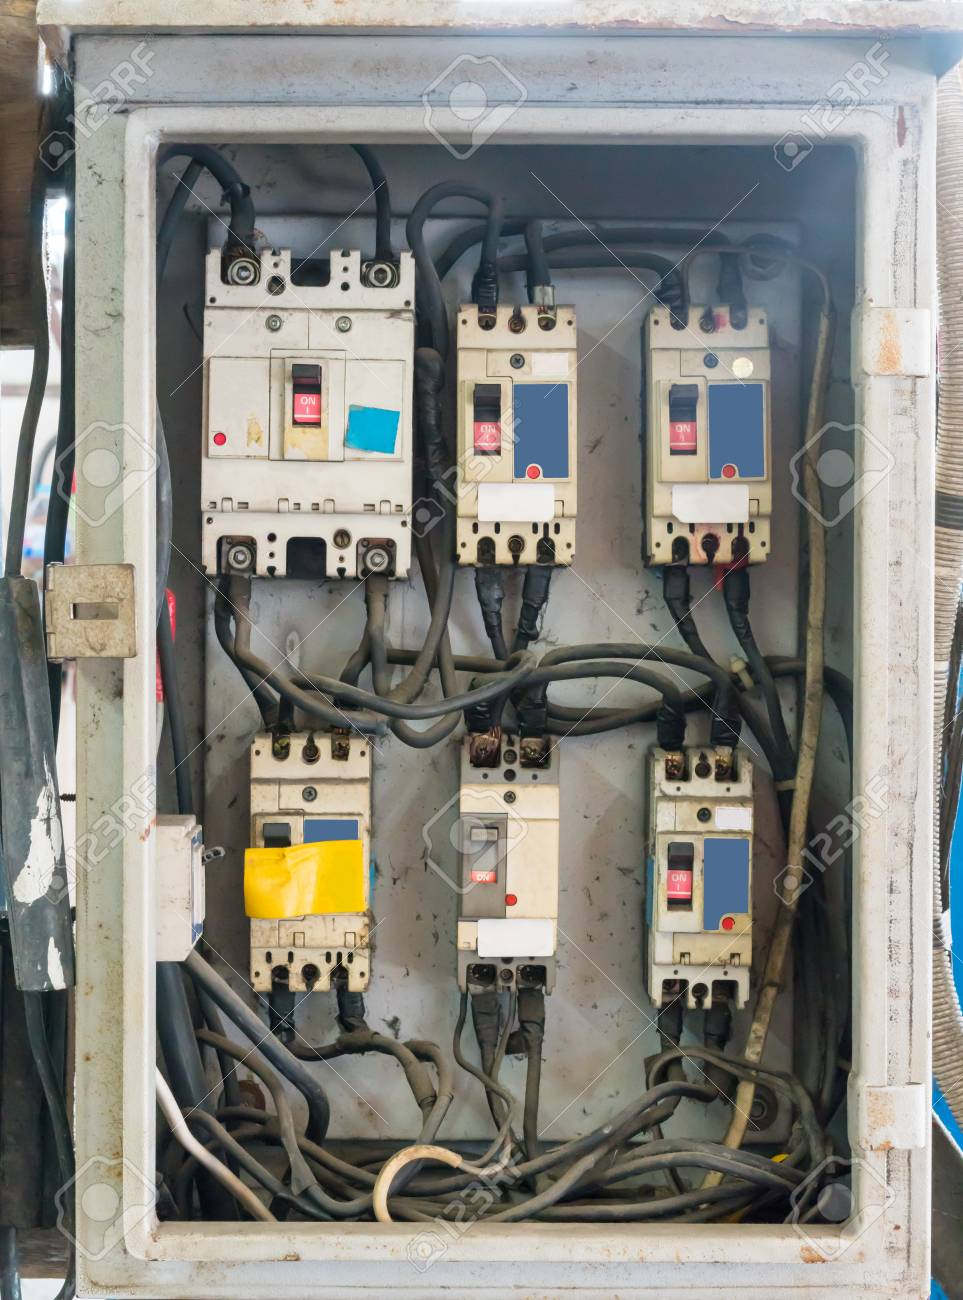 Electrical Panels, Controls And Switches In The Metal Box Stock ...